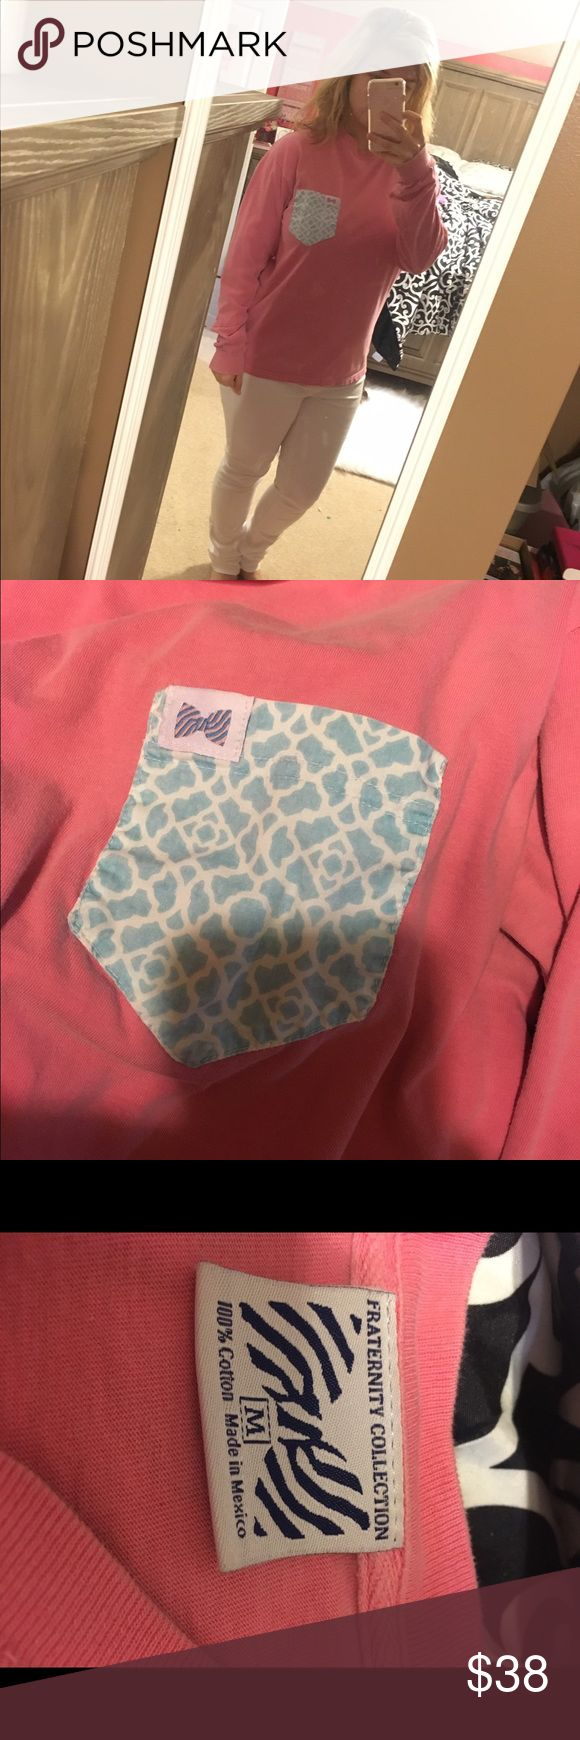 🌸MOVING SALE🌸 Fraternity Collection pink top Size medium. Good condition. Fraternity Collection Tops Tees - Long Sleeve